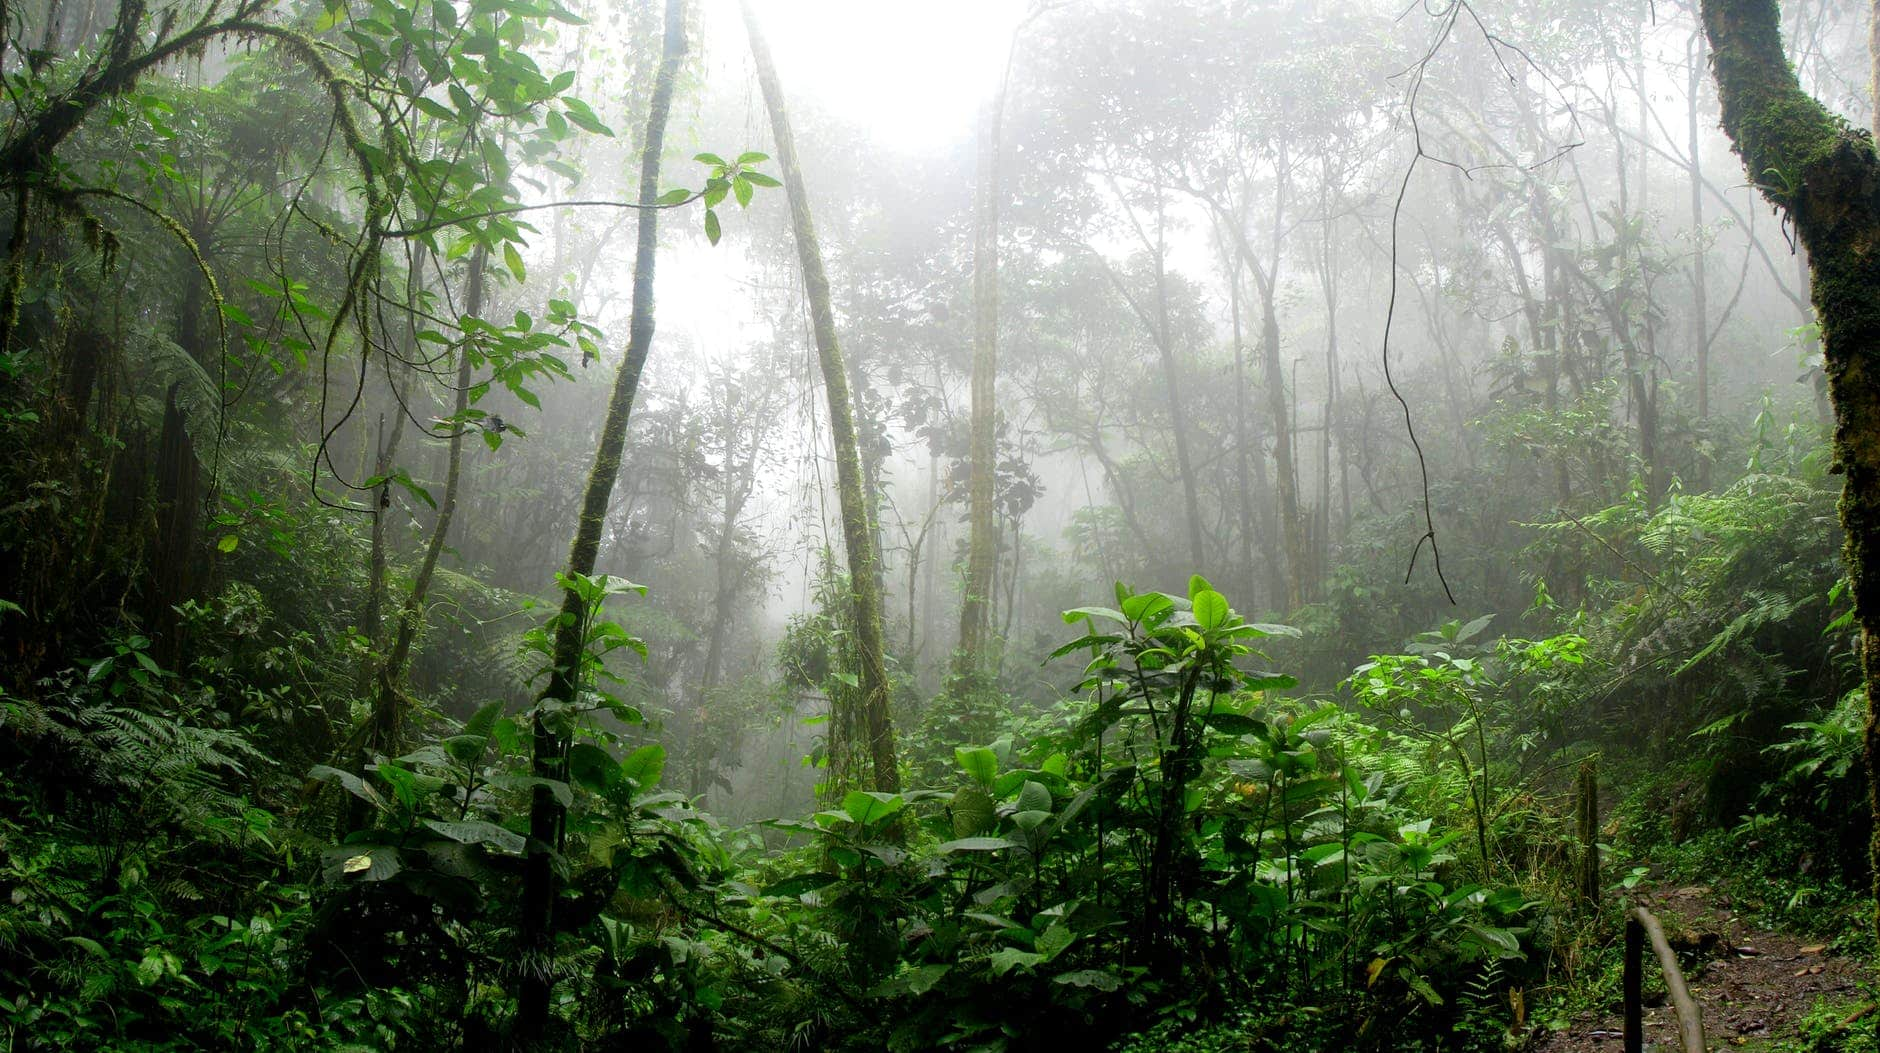 5 Ways You Can Help the Burning Amazon Rainforest in B.C.